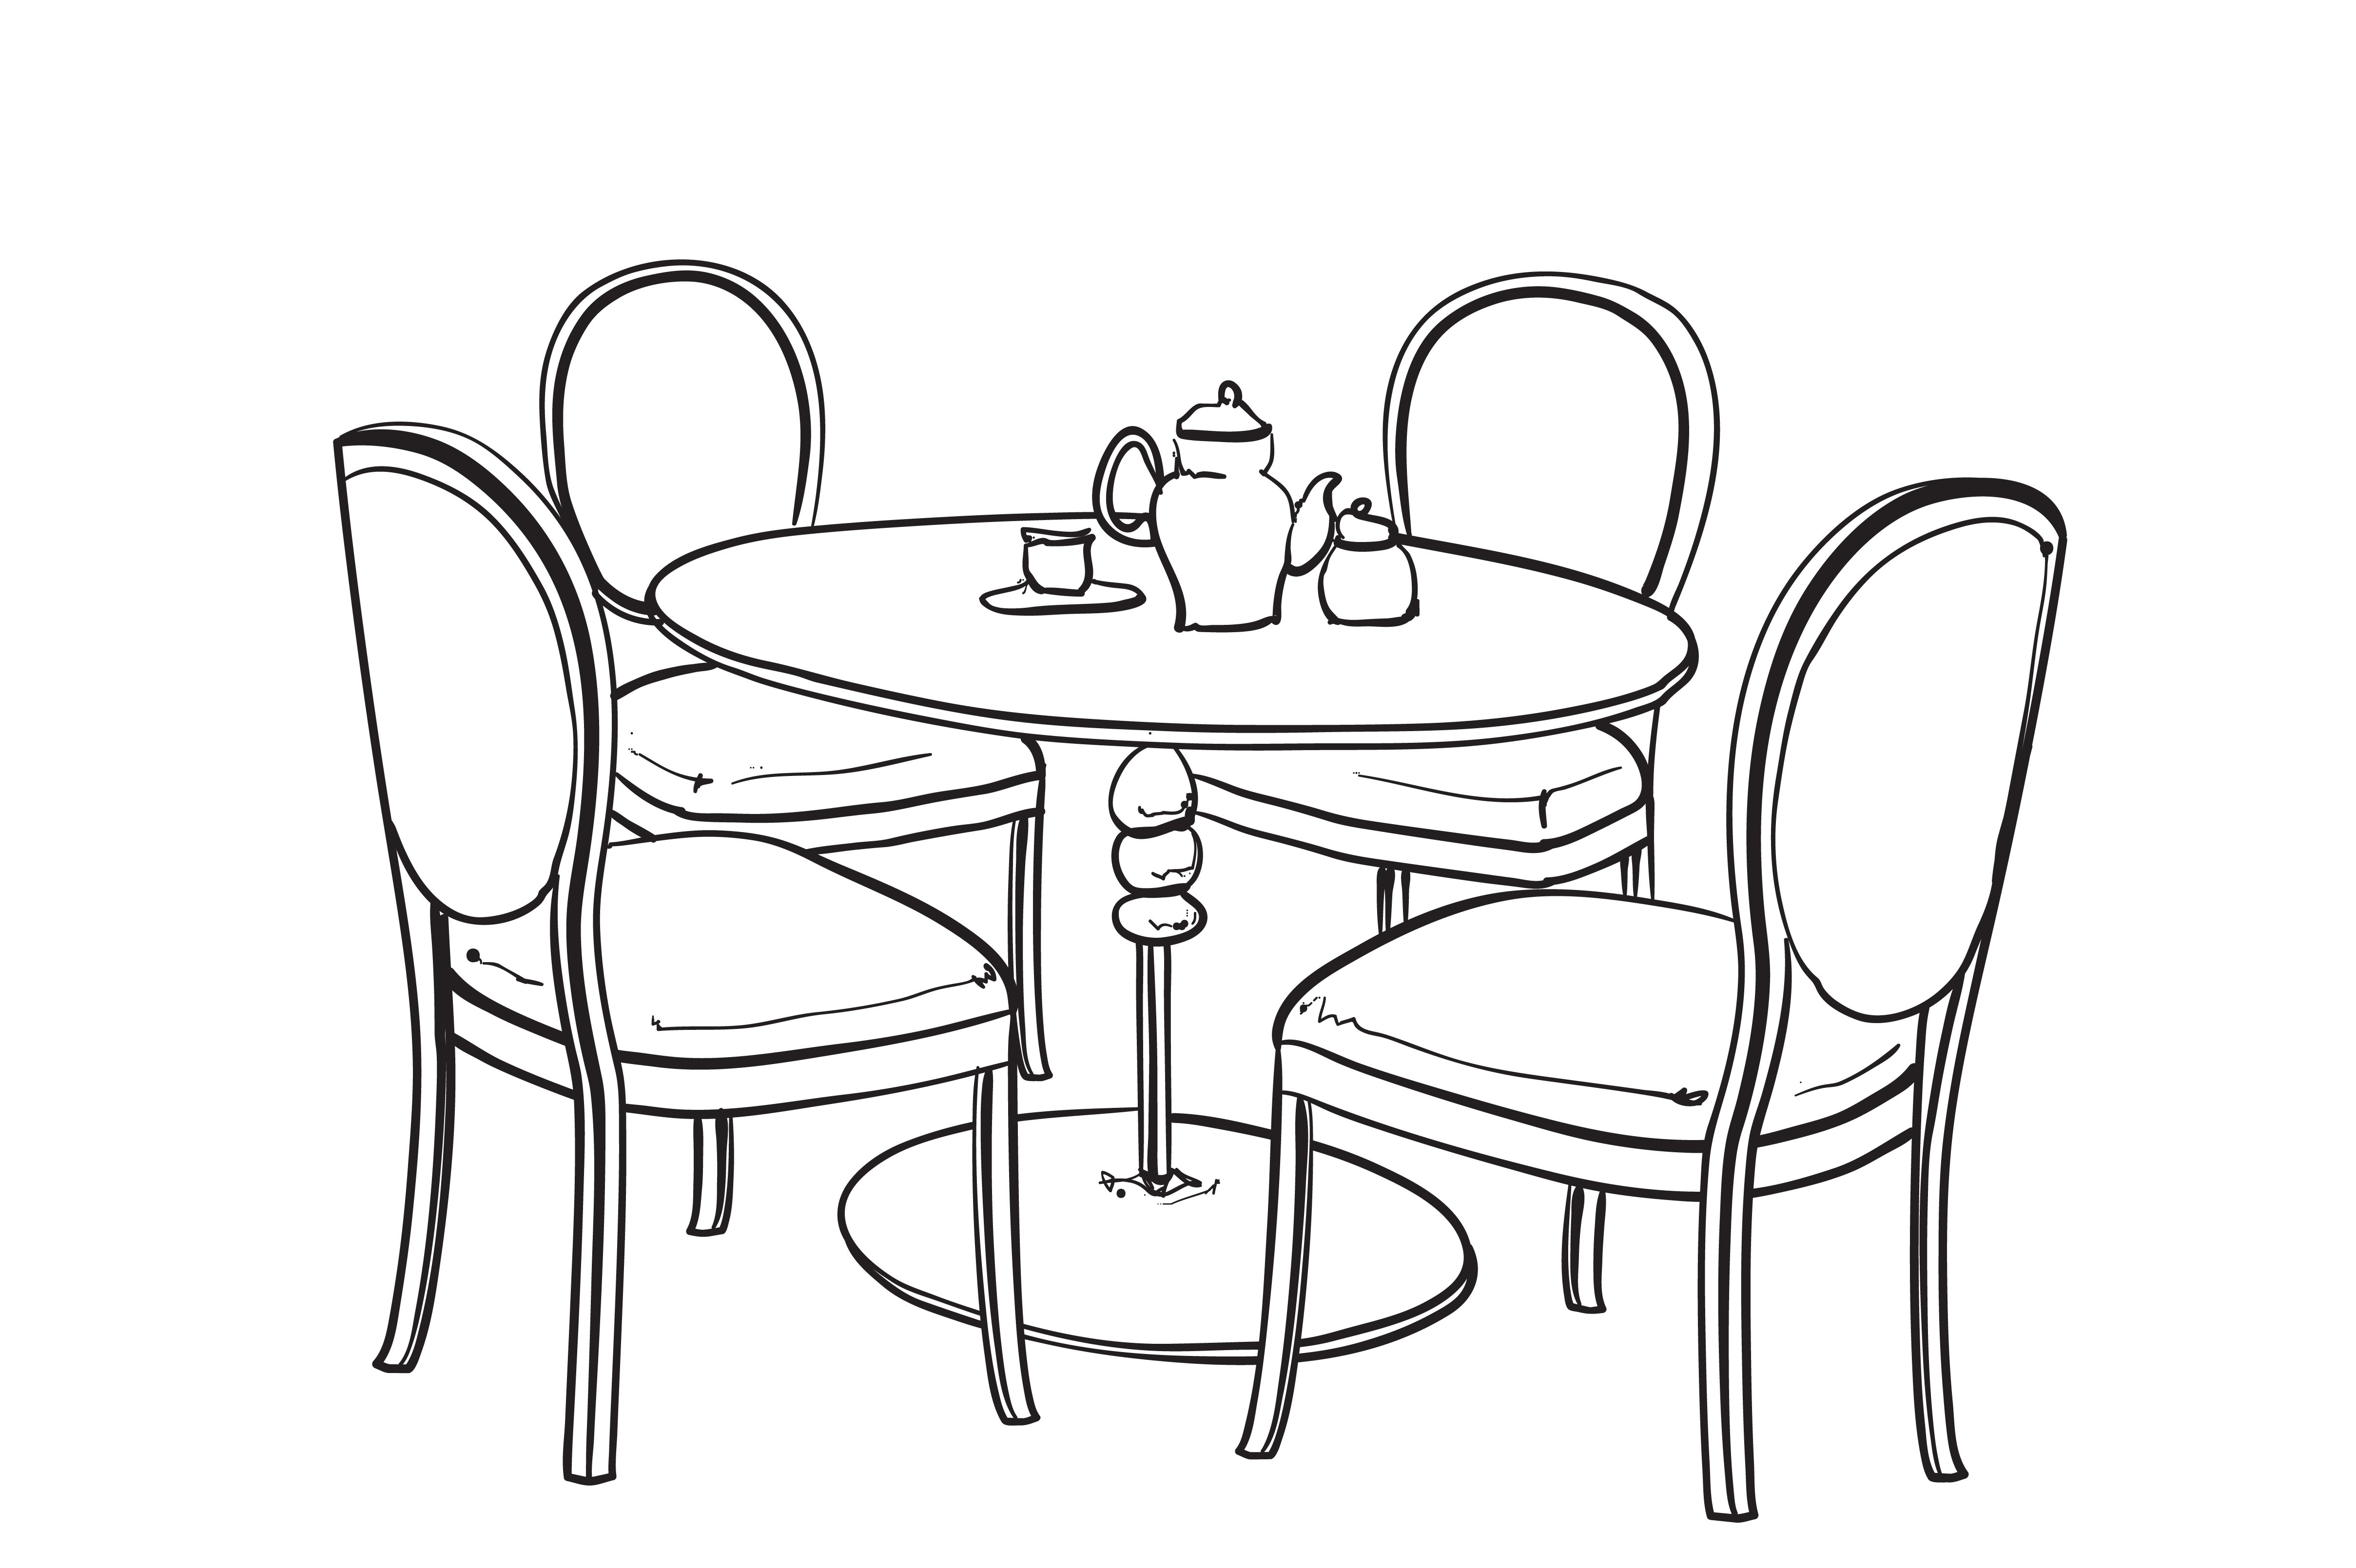 Line Art Table : Dinner table furniture sketch illustrations creative